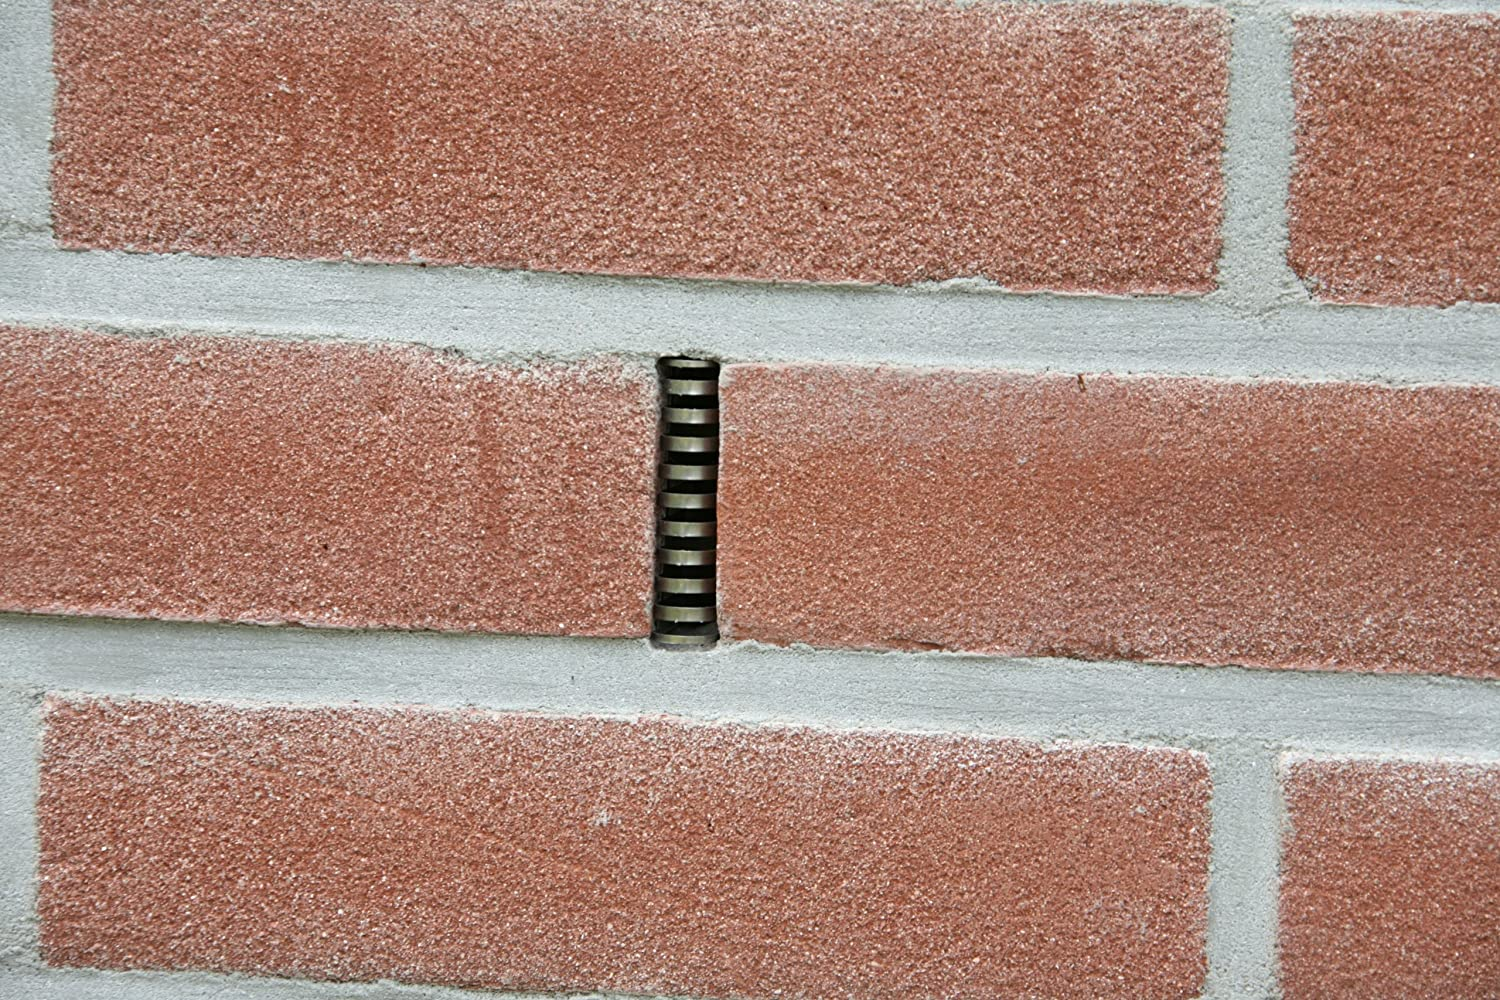 Amazoncom RidOMice Inch Stainless Steel Weep Hole Cover - Brick weeps